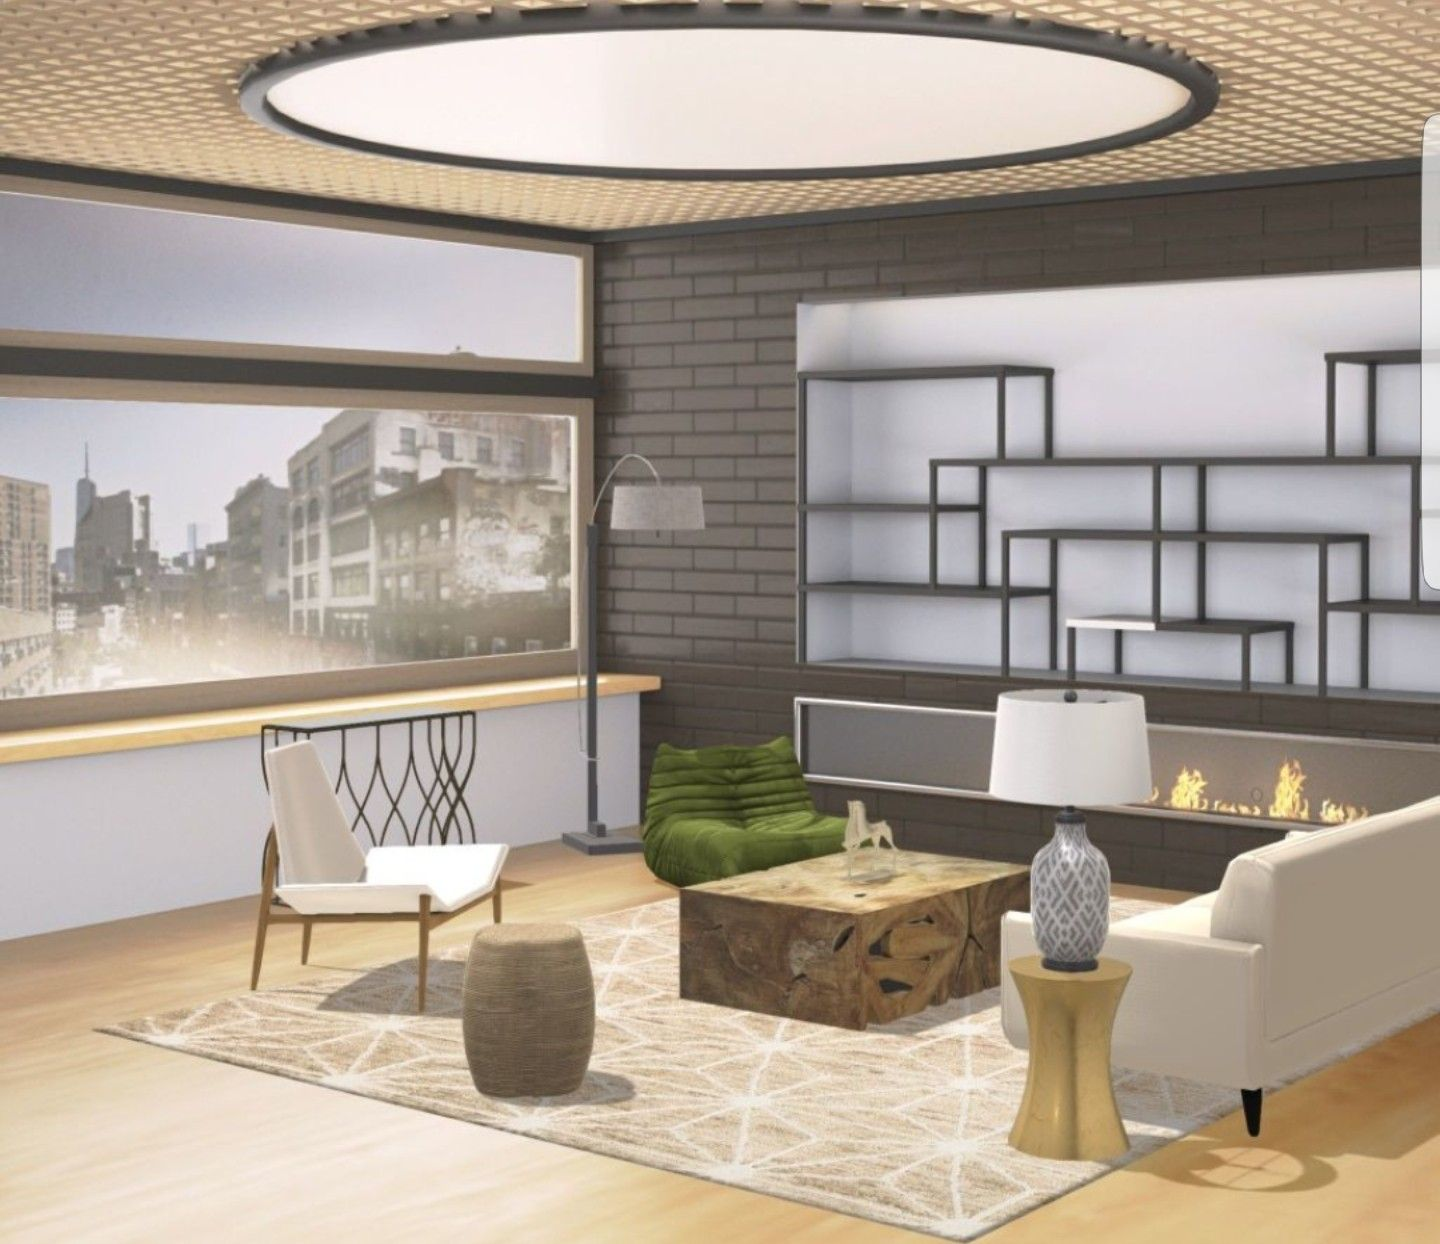 Design My Living Room App Impressive My Project Of Peaceful #livingroom In Neutral Colors With Asian Design Inspiration